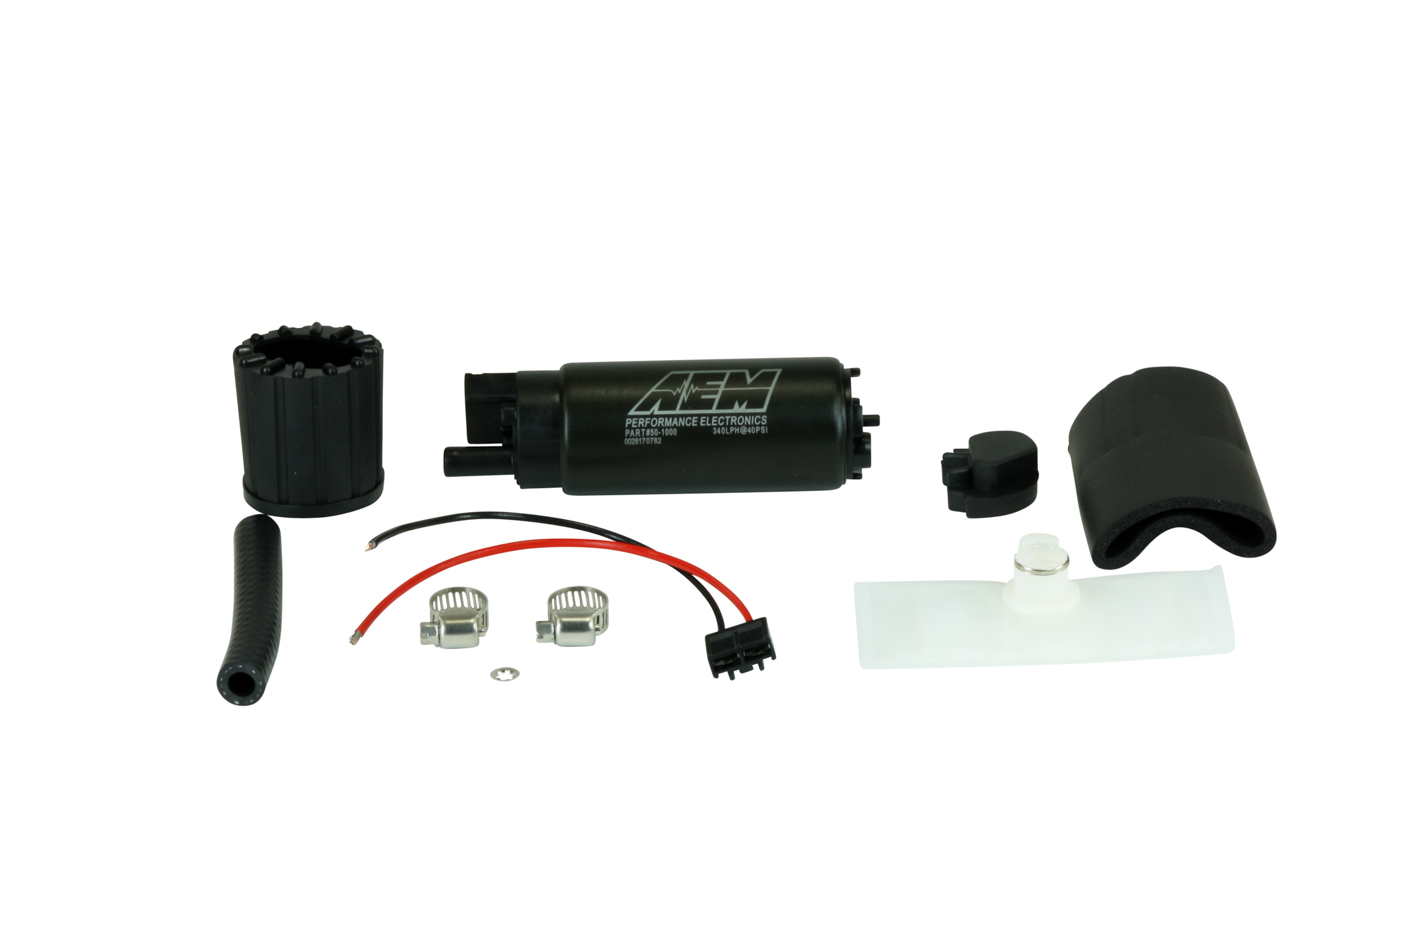 AEM 50-1000 Fuel Pump, High Flow, Electric, In-Tank, 320 lph at 43 psi, Offset Filter Sock Inlet, 8 mm Hose Barb Outlet, Install Kit, Gas, Kit